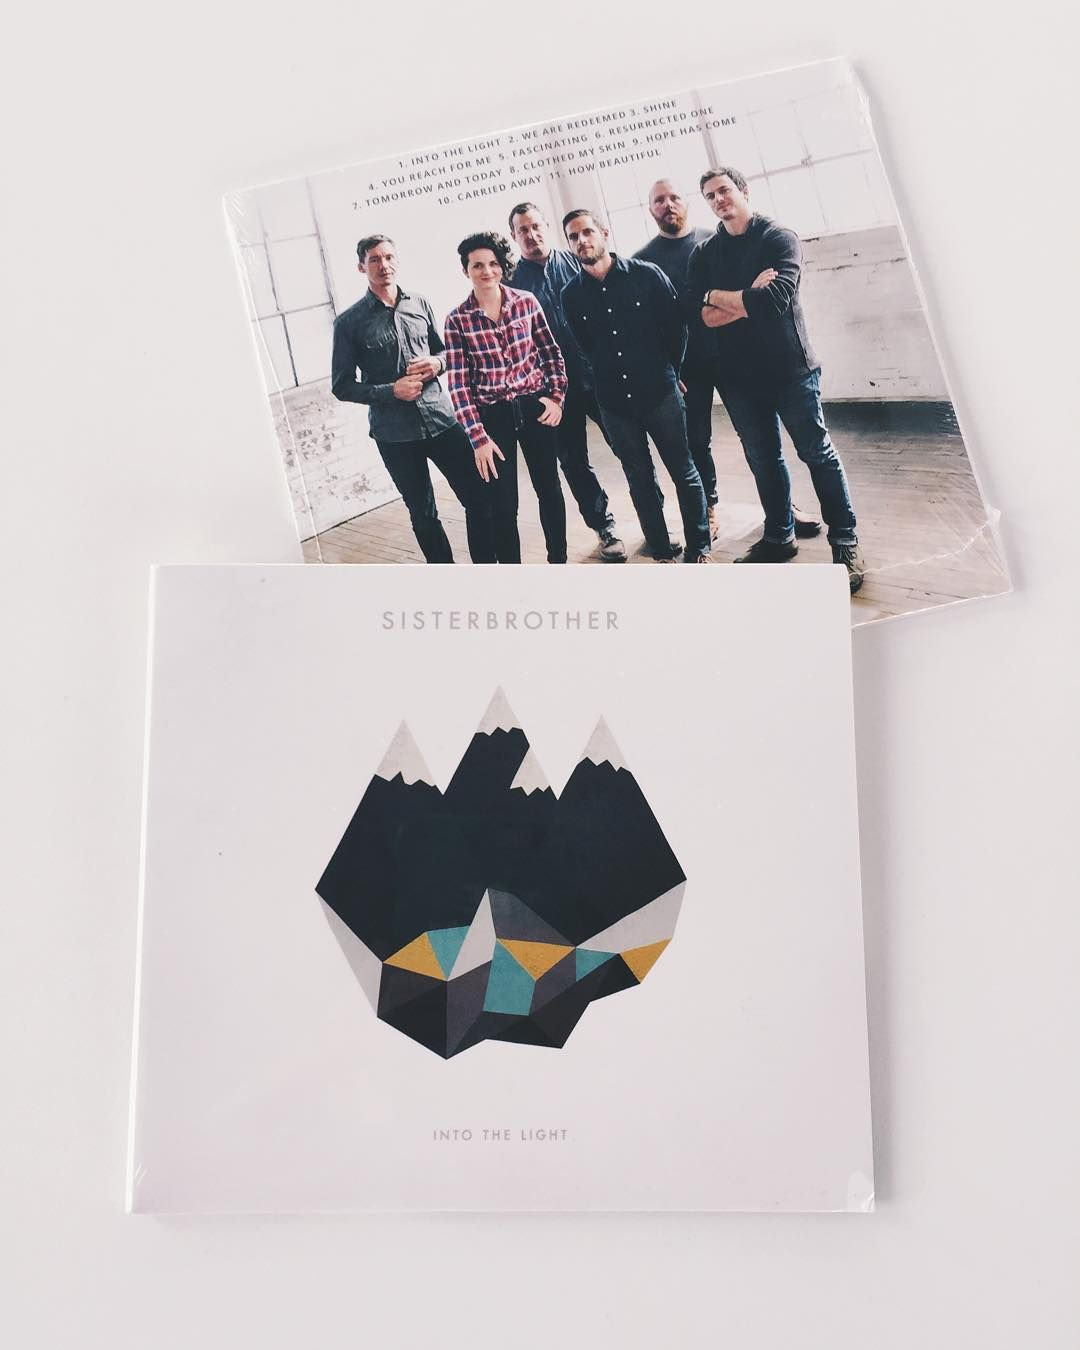 Its Friday - Which means we are giving something away! This week you have the awesome band @sisterbrotherpa to thank! Win 2 copies of their latest and totally amazing CD - one for you and one for a friend. We seriously listen to this album all the time it the studio. And in the car. And at home.  Follow @walkinlove and @sisterbrotherpa and then tag the friend you want to win the second copy in the comments below! Have fun! Winners will be contacted directly. #walkinlove #walkinlovegiveaways